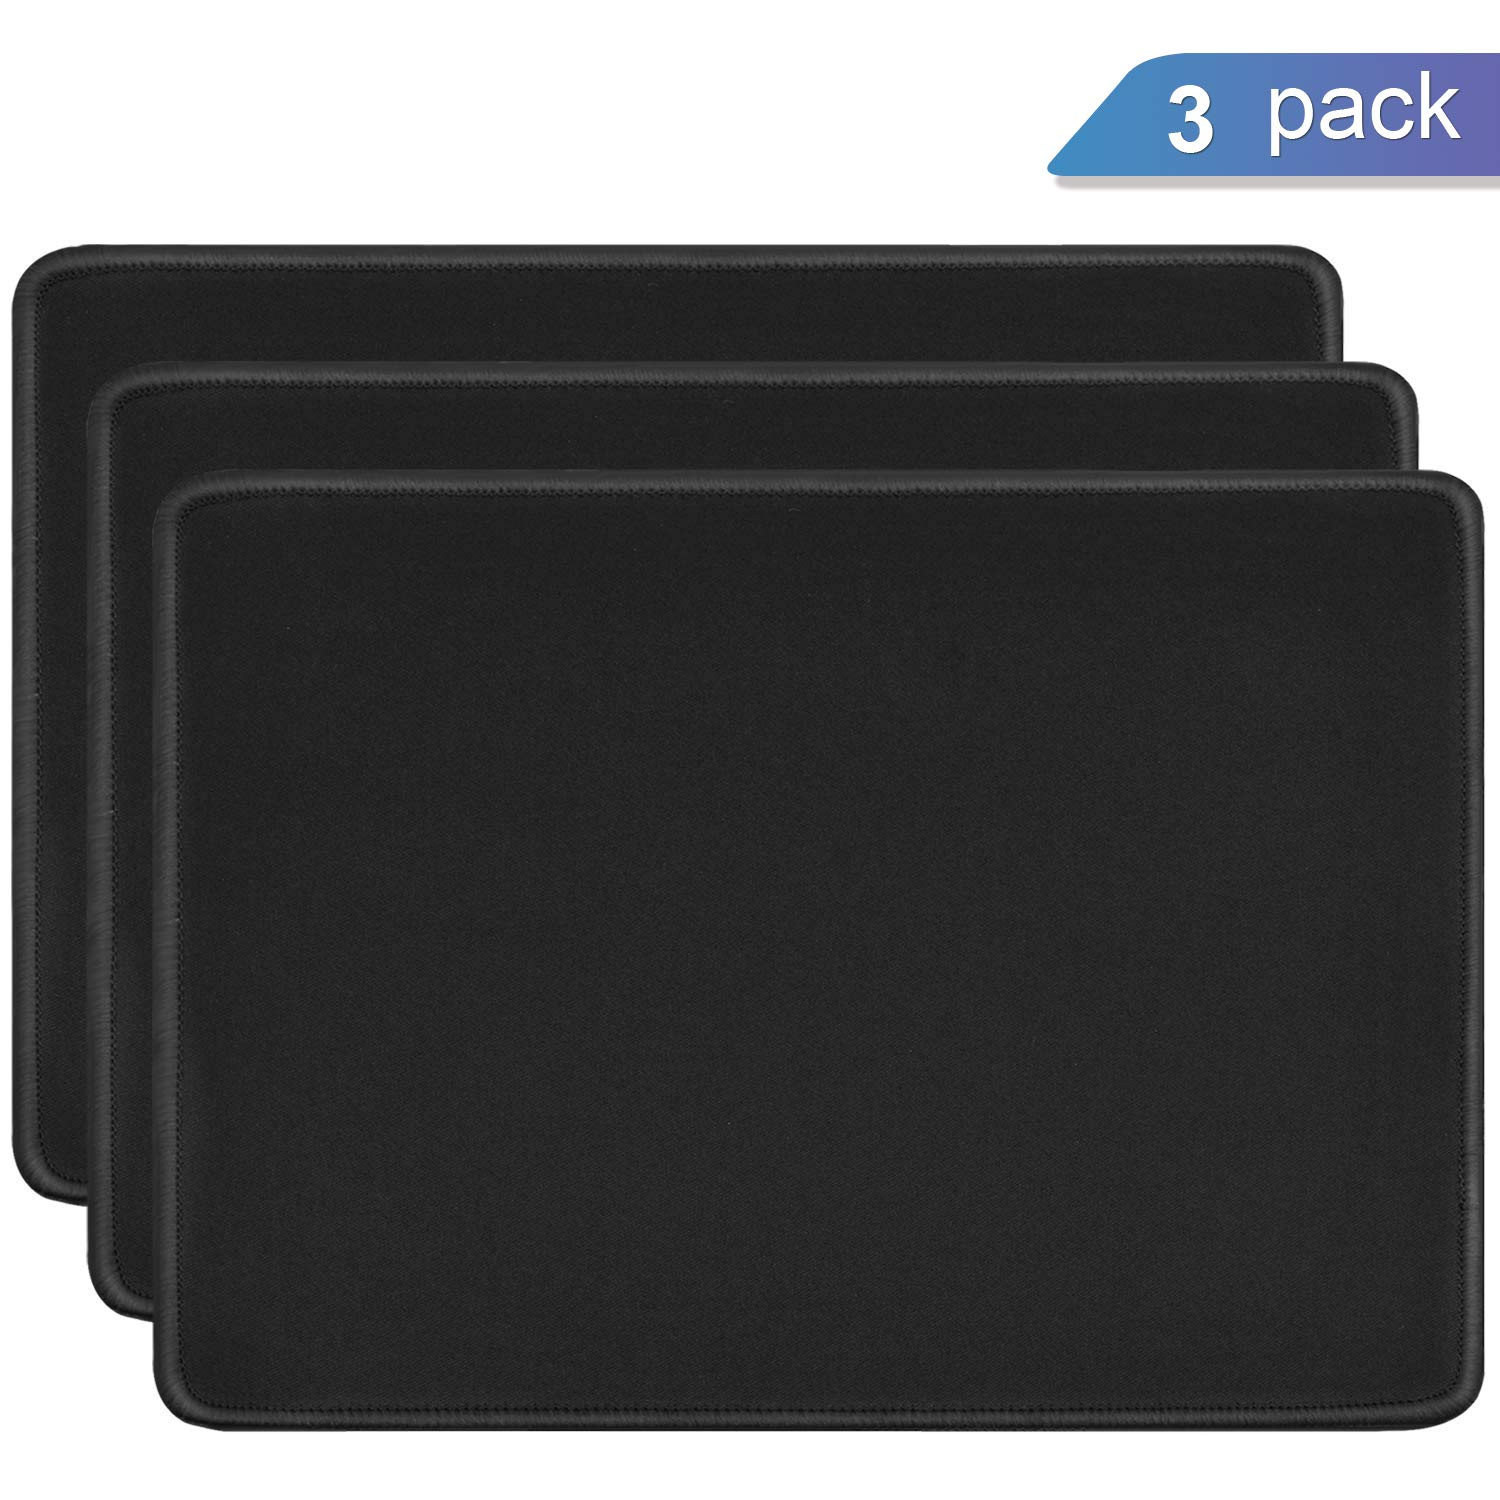 Mouse Pads, Ktrio Large Gaming Mouse Pad with Non-Slip Rubber Base Mouse Mat Waterproof Mousepad with Stitched Edges for Logitech VicTsing Razer Pictek Mouse 14 x 11 x 0.12inch 3mm Thick Black 3 Pack